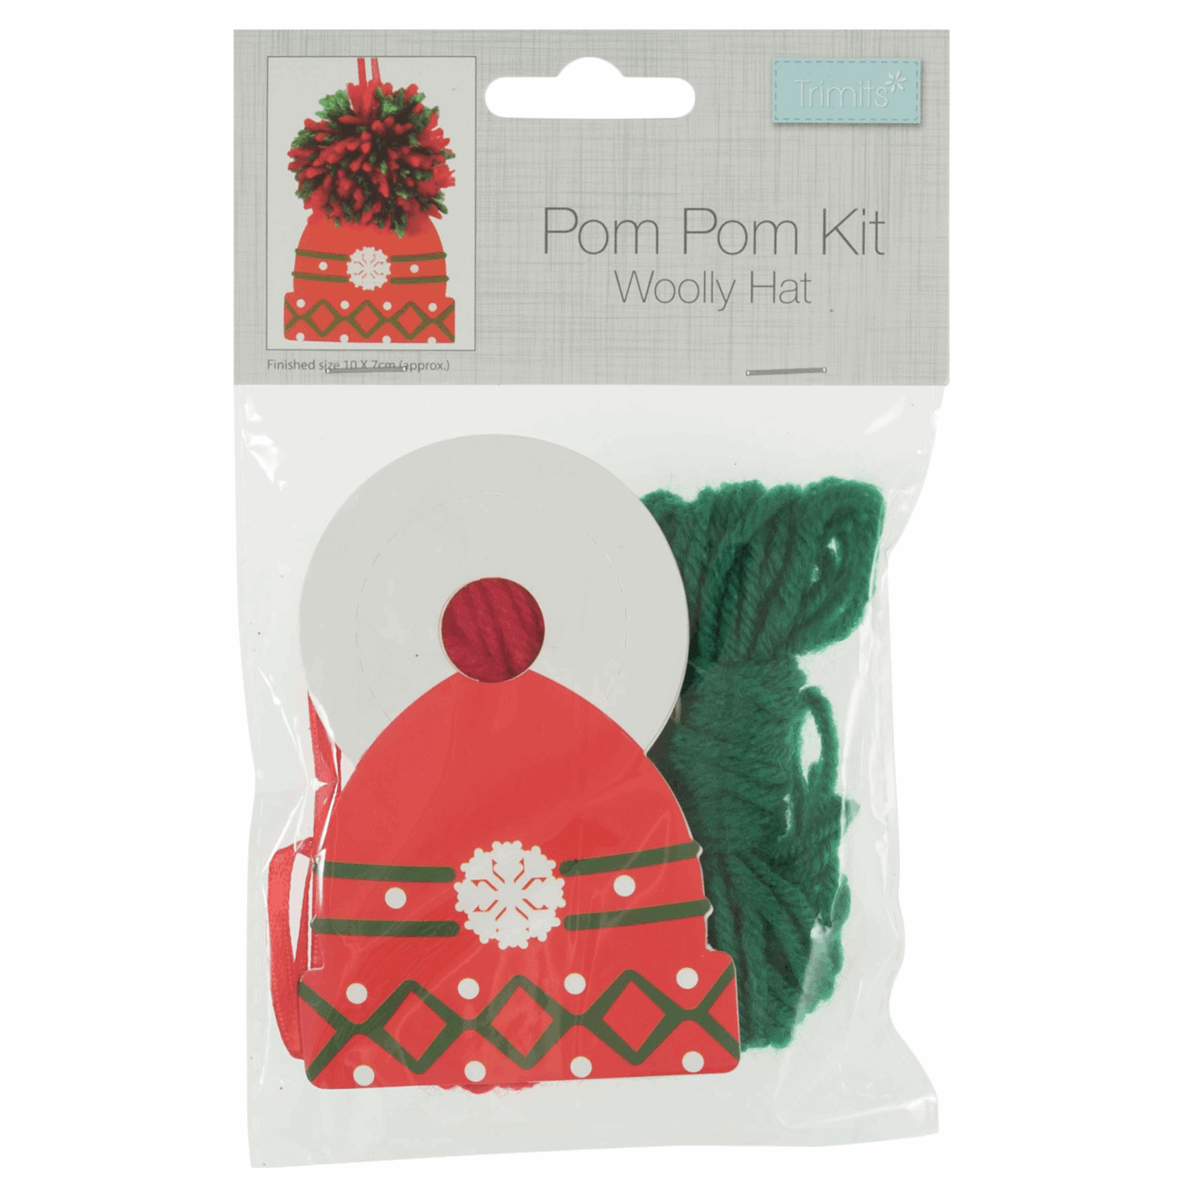 Picture of Pom Pom Decoration Kit: Woolly Hat